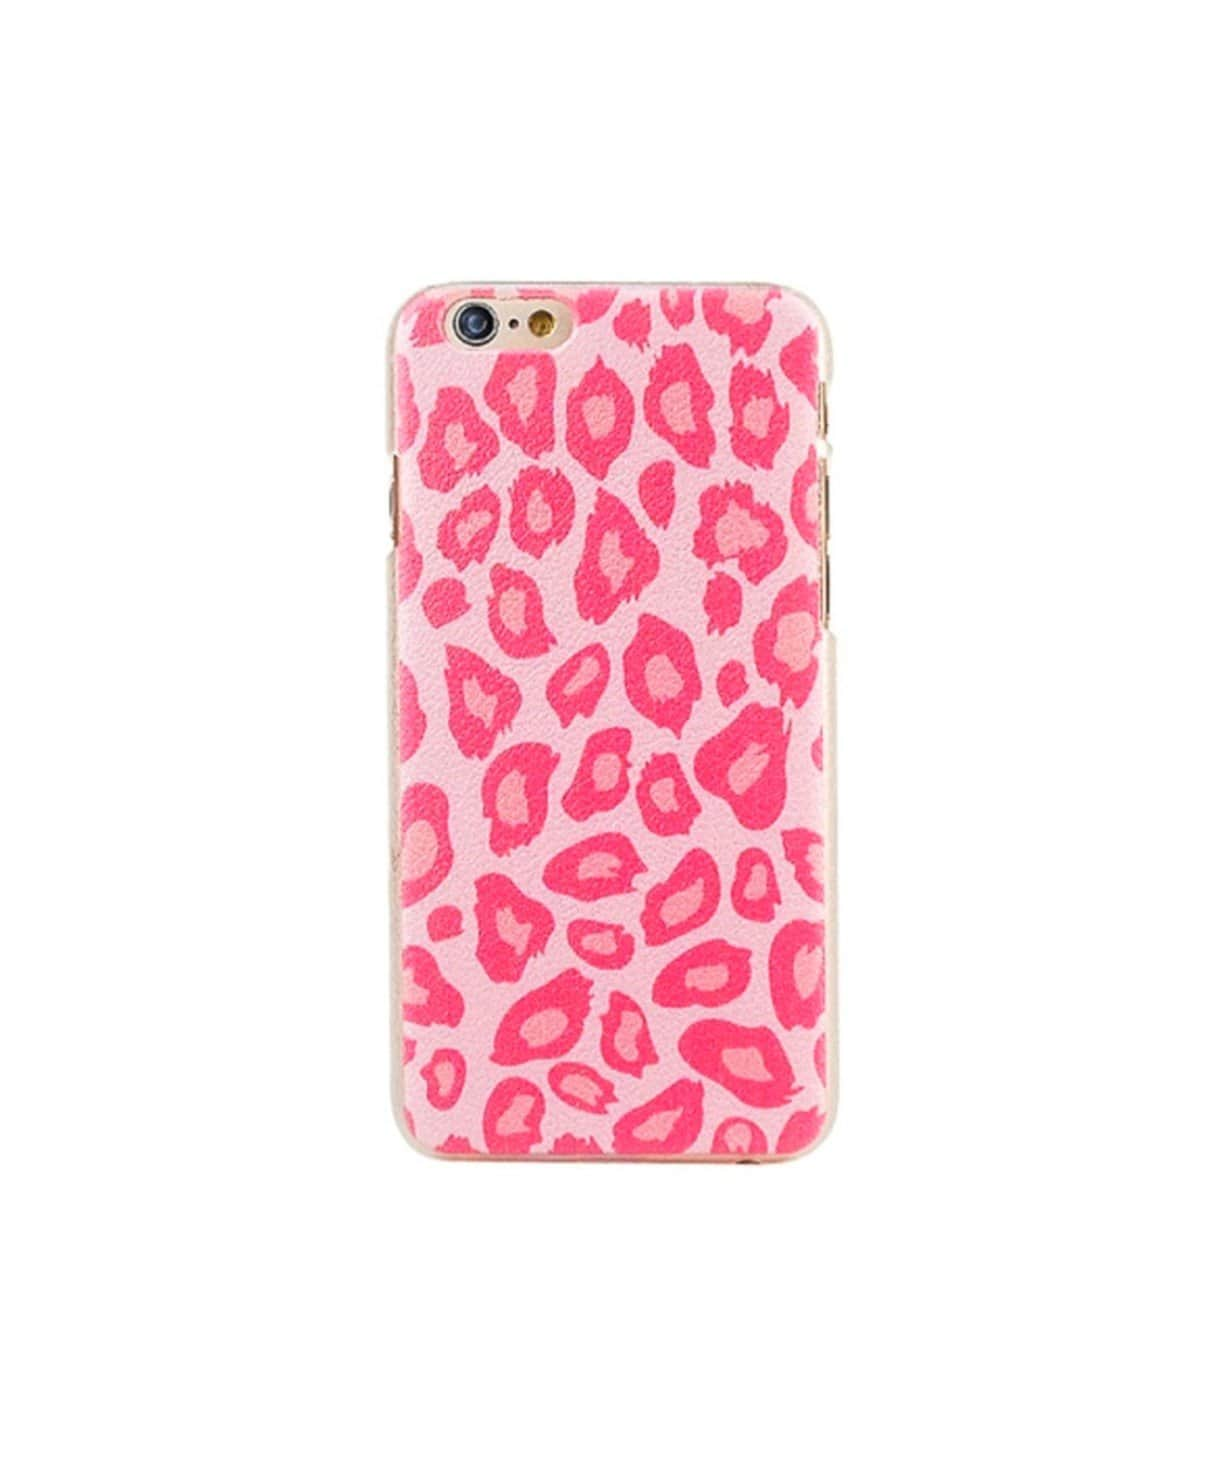 Fierce Damsel IPhone Cover - Uptownie